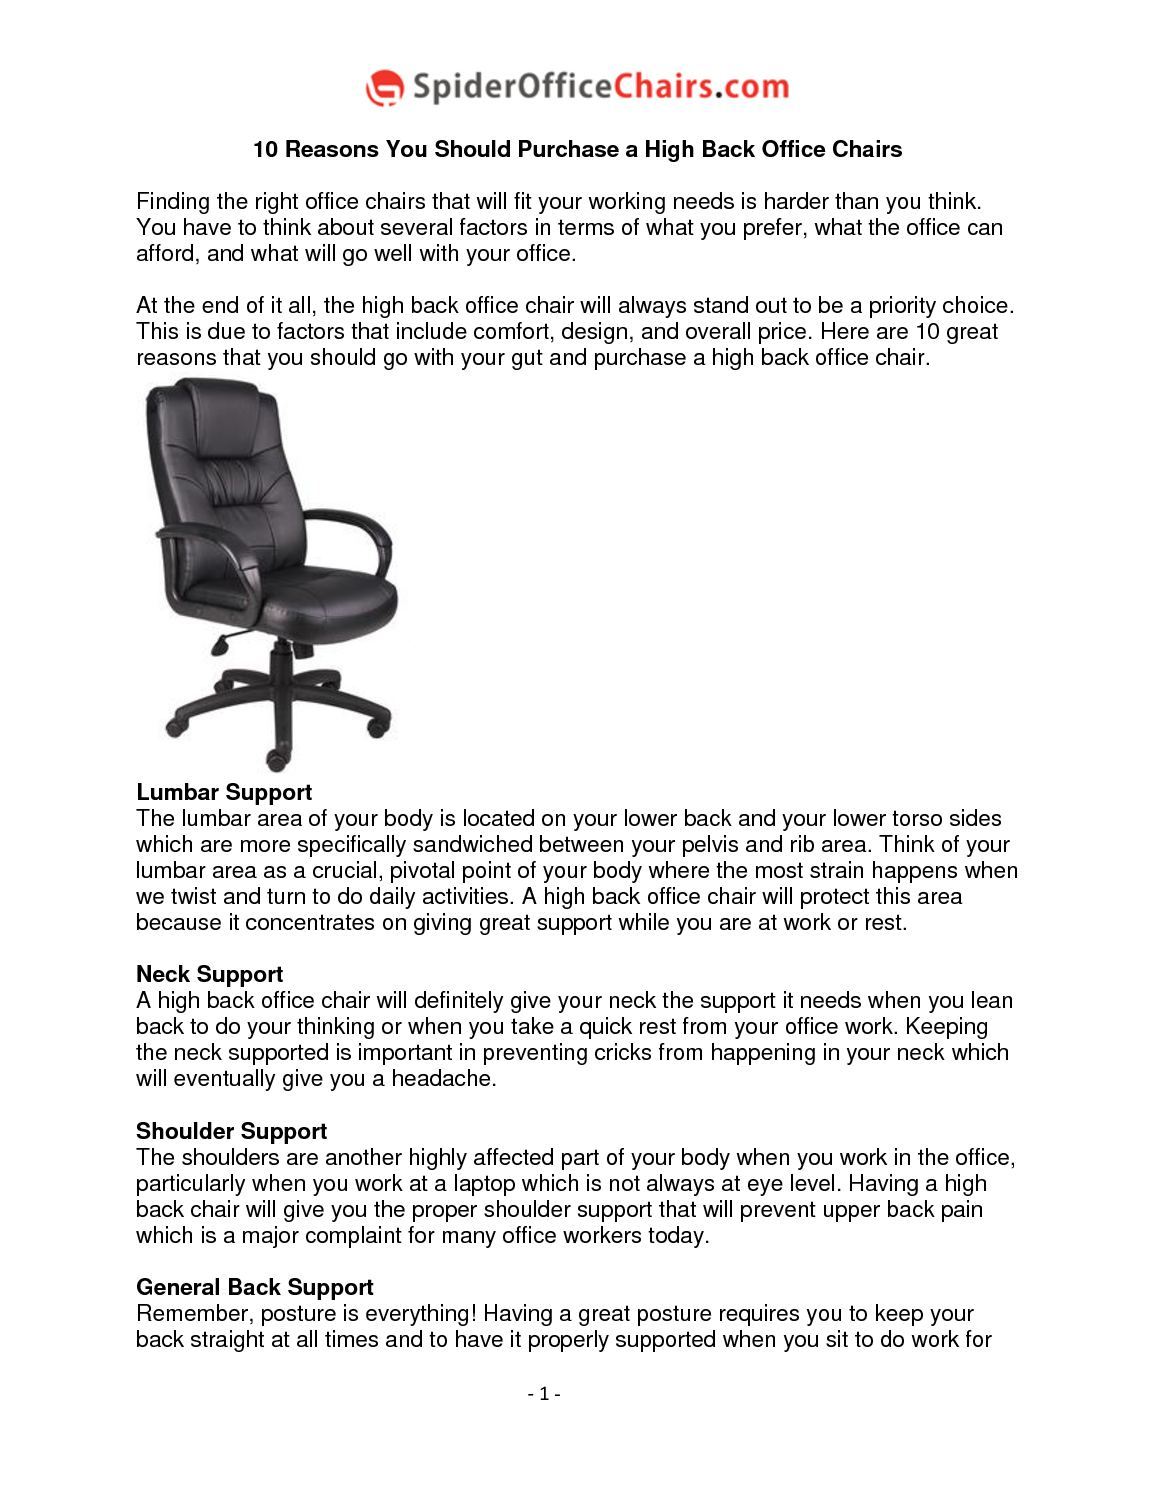 Calameo 10 Reasons You Should Purchase A High Back Office Chairs